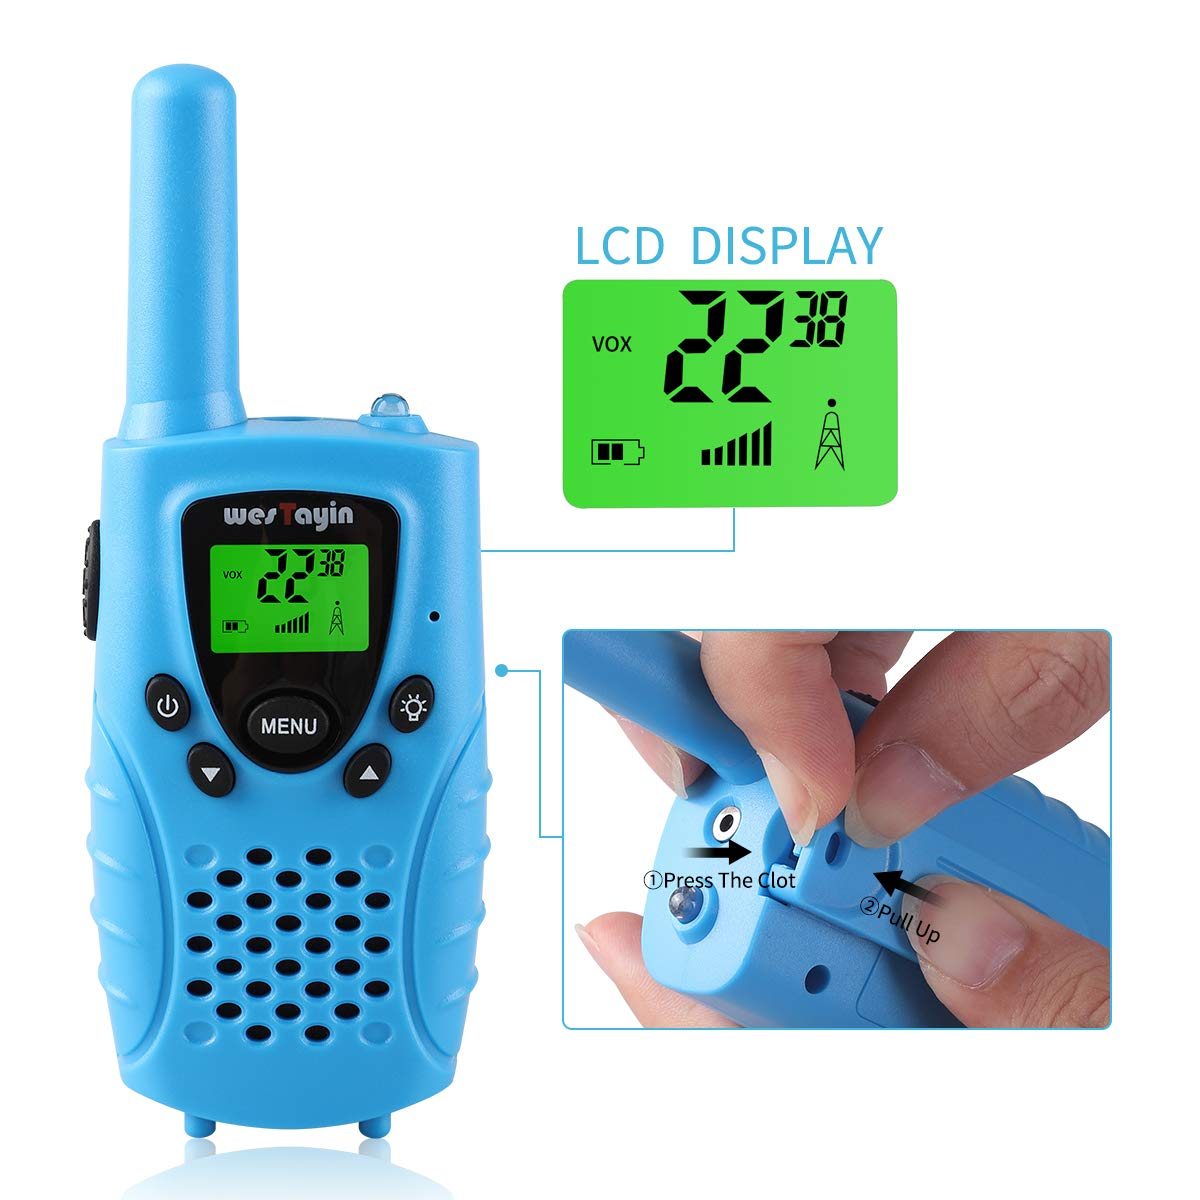 WES TAYIN Kids Walkie Talkies Rechargable, 4 Miles Long Range Walkie Talkies Toy with Durable Rugged Sports Design and Flashlight, Two Way Radios Toy 2 Pack, Batteries not Included(Blue) by WES TAYIN (Image #3)